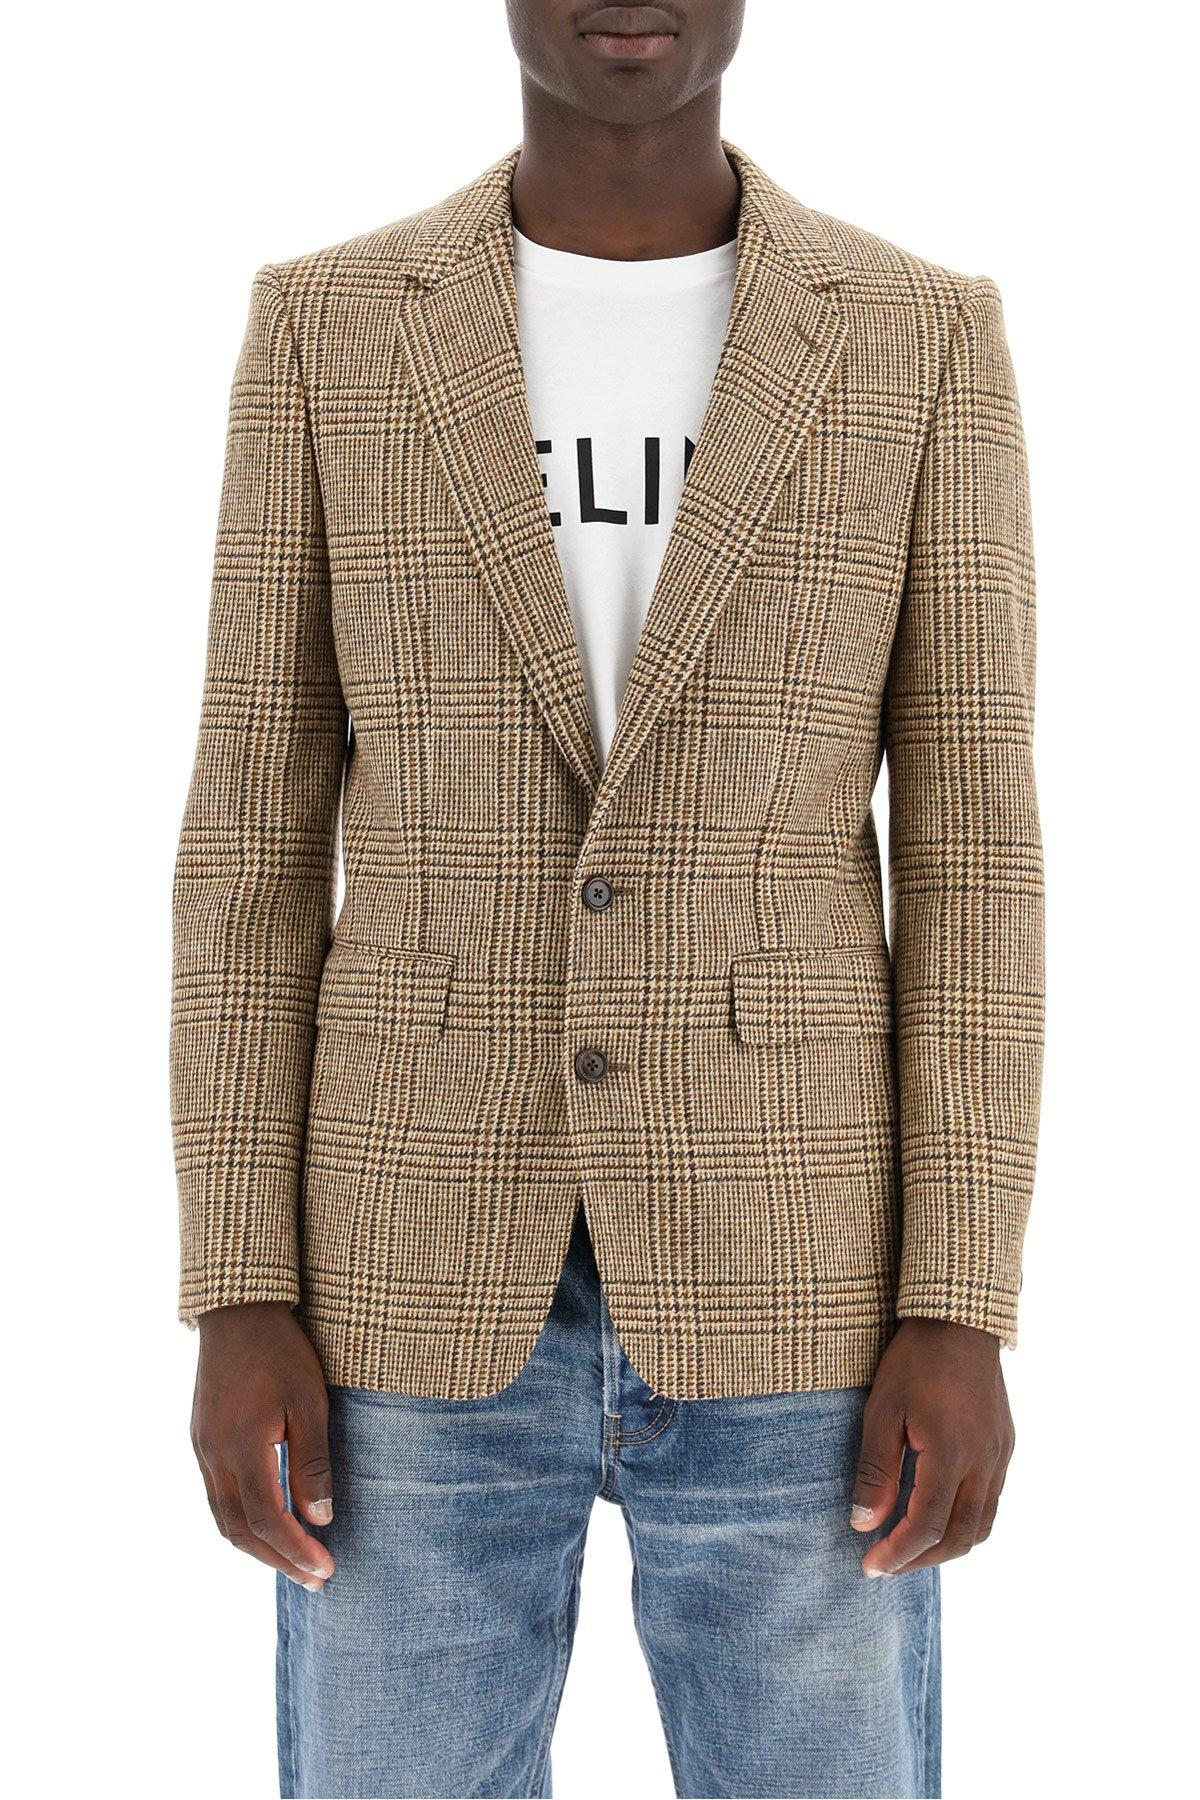 Prince of Wales men/'s blazer  Prince of Wales women/'s blazer  Vintage women/'s jacket  Vintage jacket with green straps